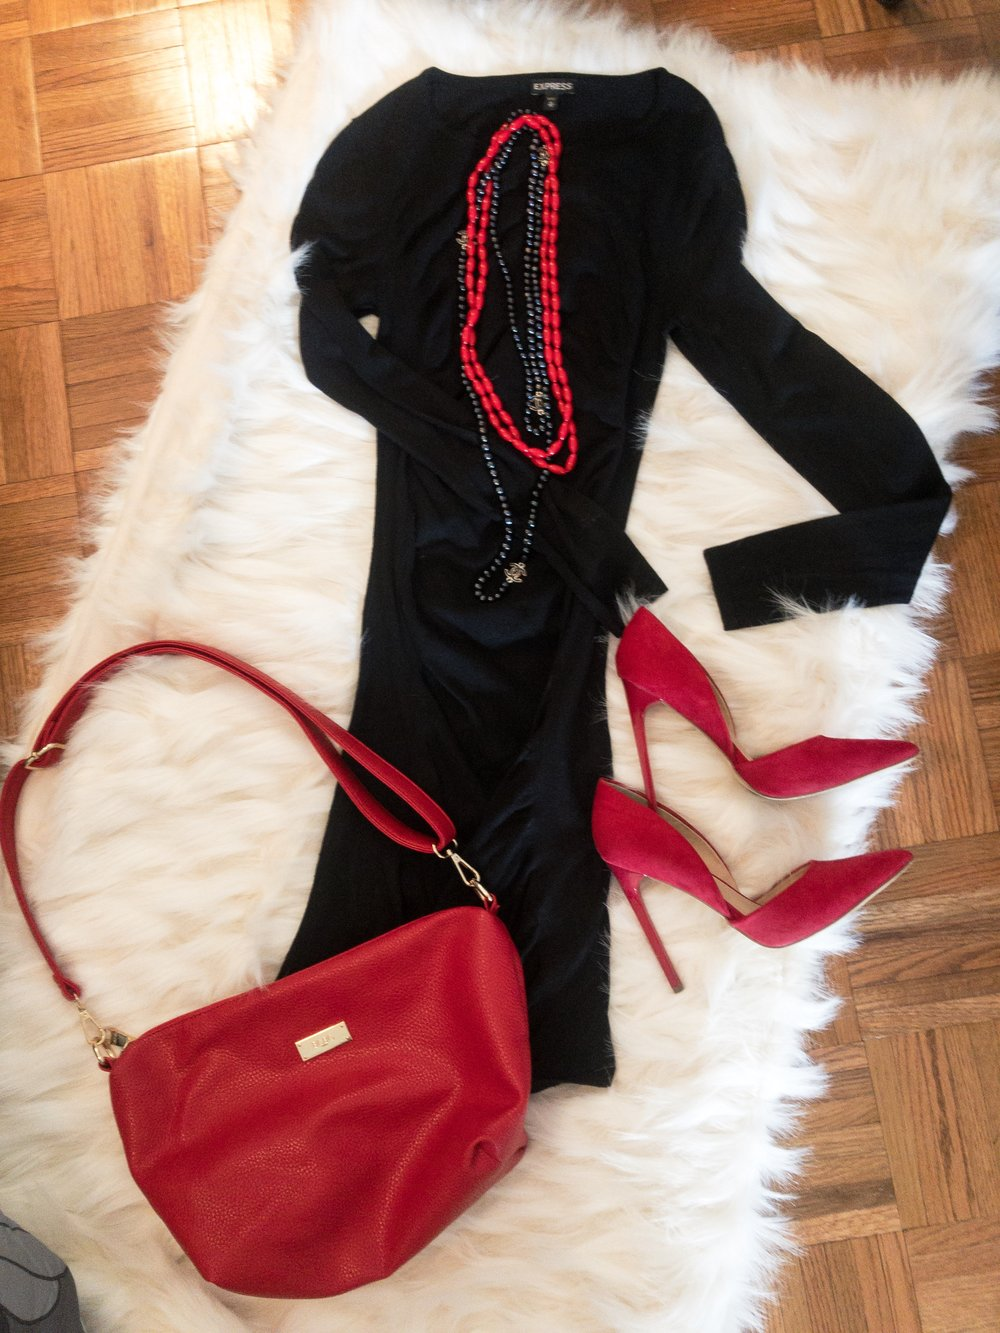 This simple black sweater dress from Express is immediately ready for V-Day with red accessories.